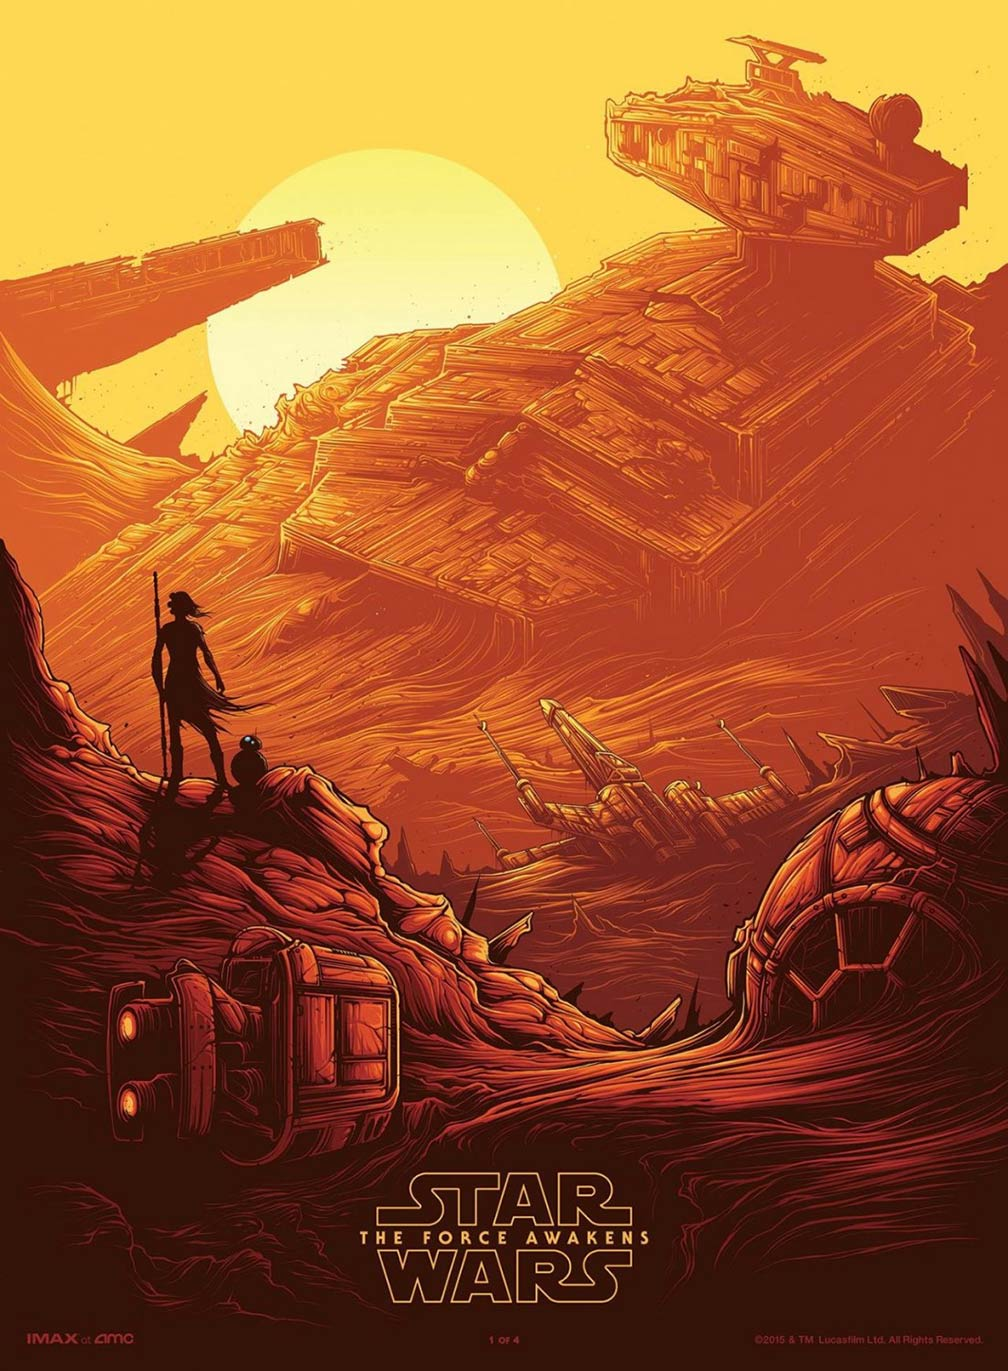 Star Wars: Episode VII - The Force Awakens Poster #4